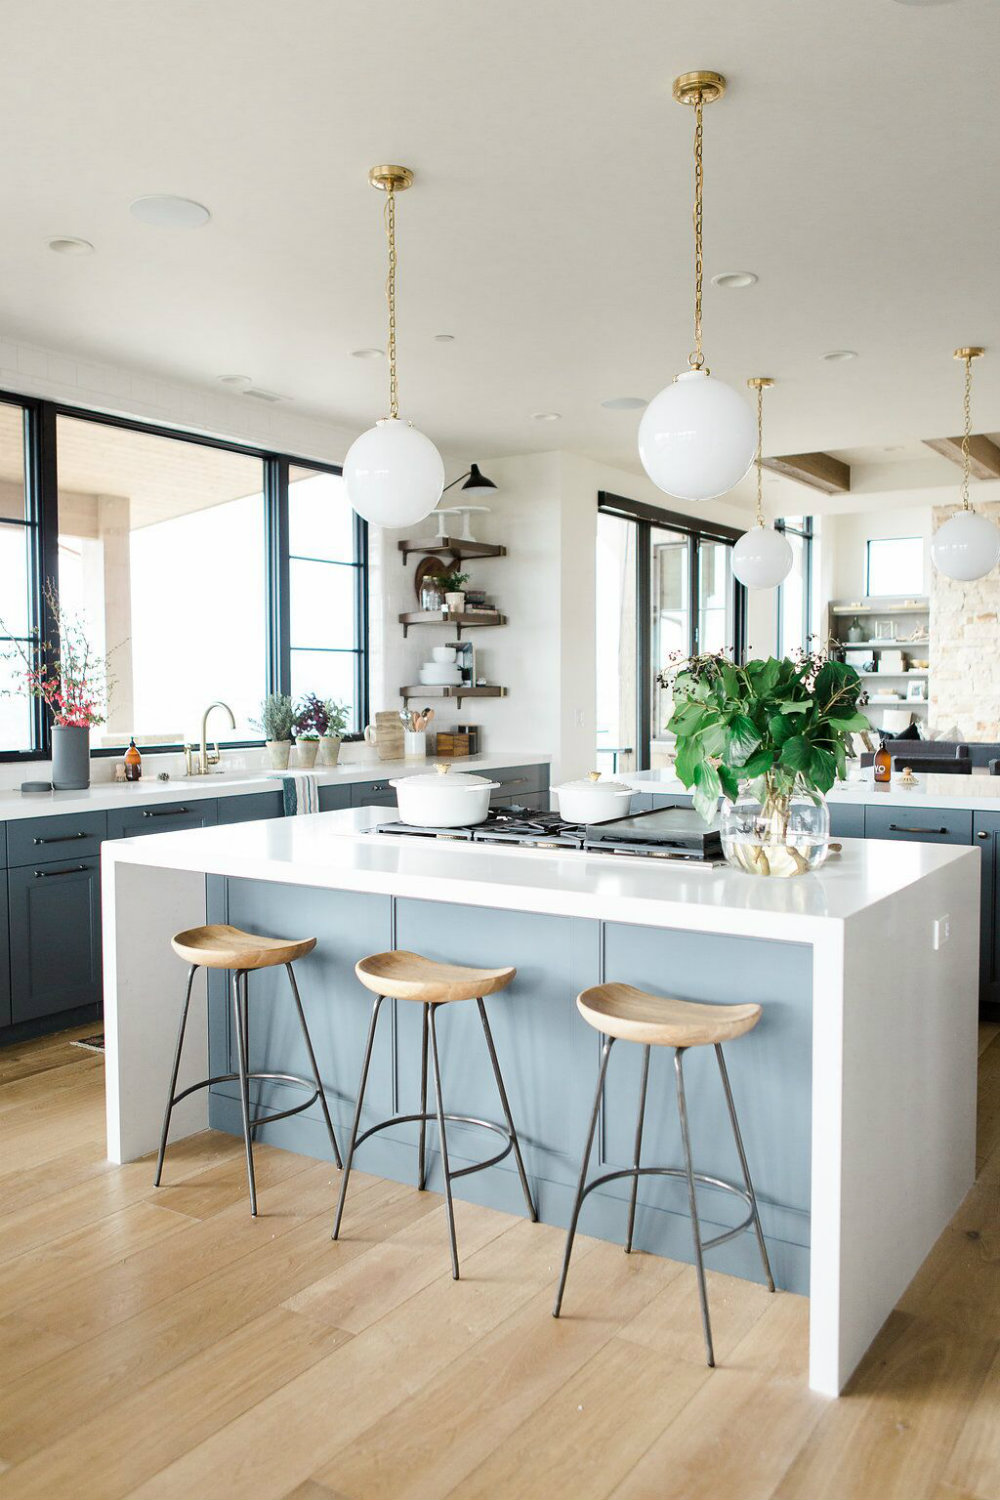 The 2017 Color Trends you Don't Want to Miss 06 2017 color trends The 2017 Color Trends you Don't Want to Miss The 2017 Color Trends you Dont Want to Miss 06